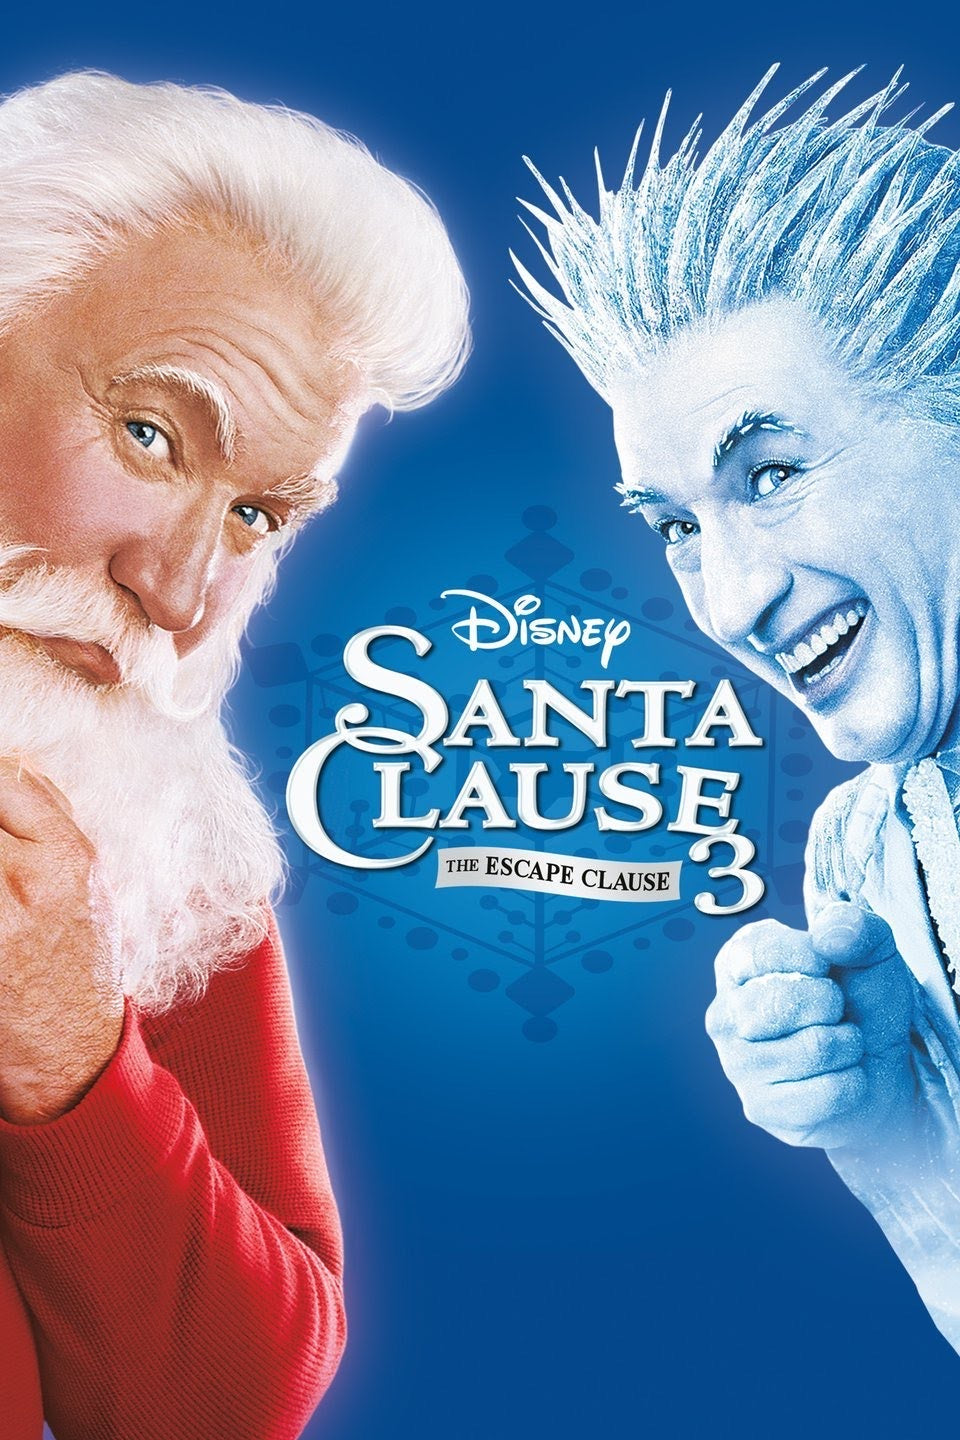 The Santa Clause 3: The Escape Clause (2006) Vudu or Movies Anywhere HD redemption only